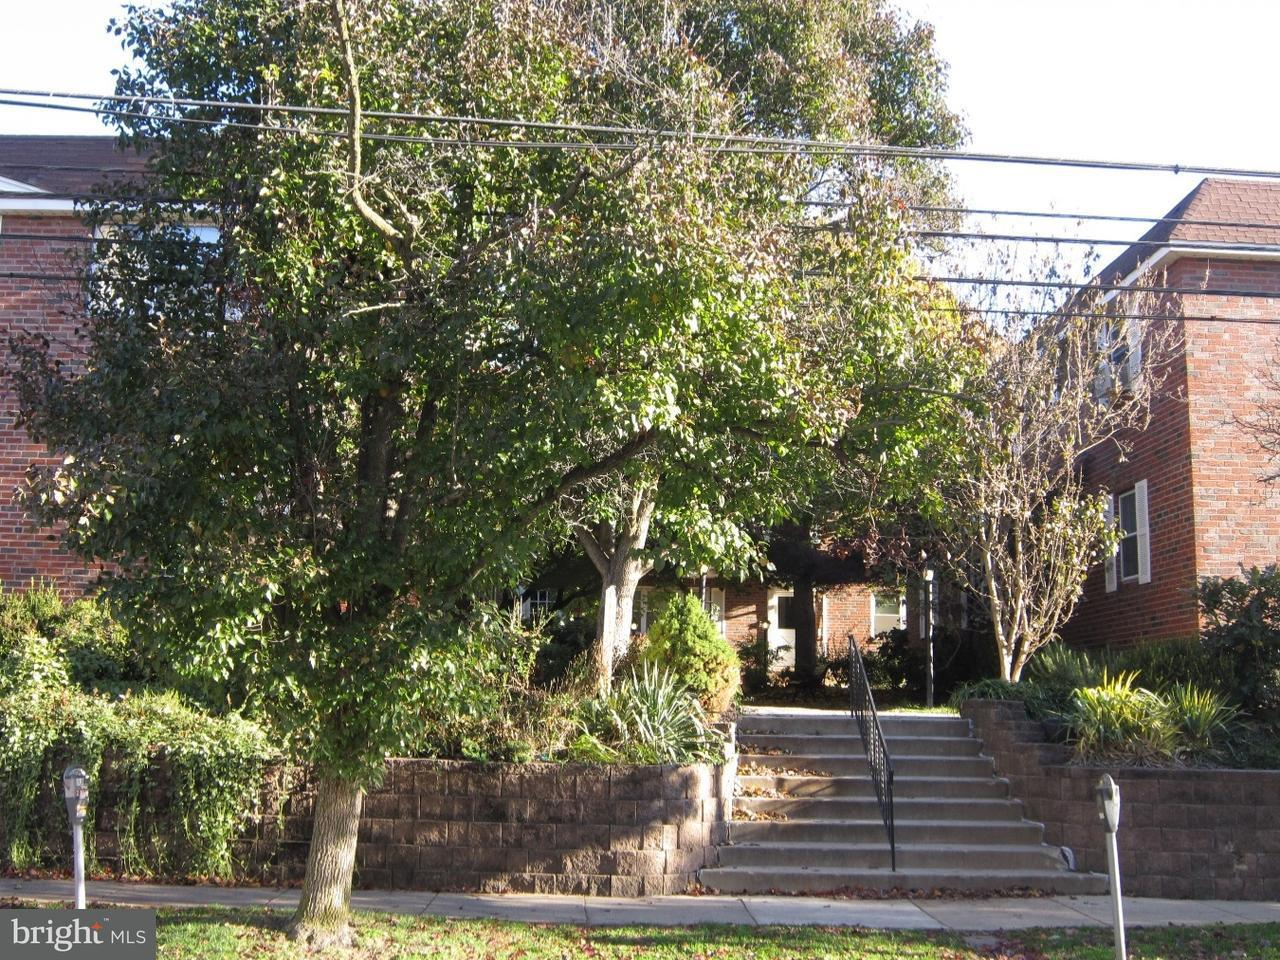 Single Family Home for Rent at 107 RUTGERS AVE #G4 Swarthmore, Pennsylvania 19081 United States